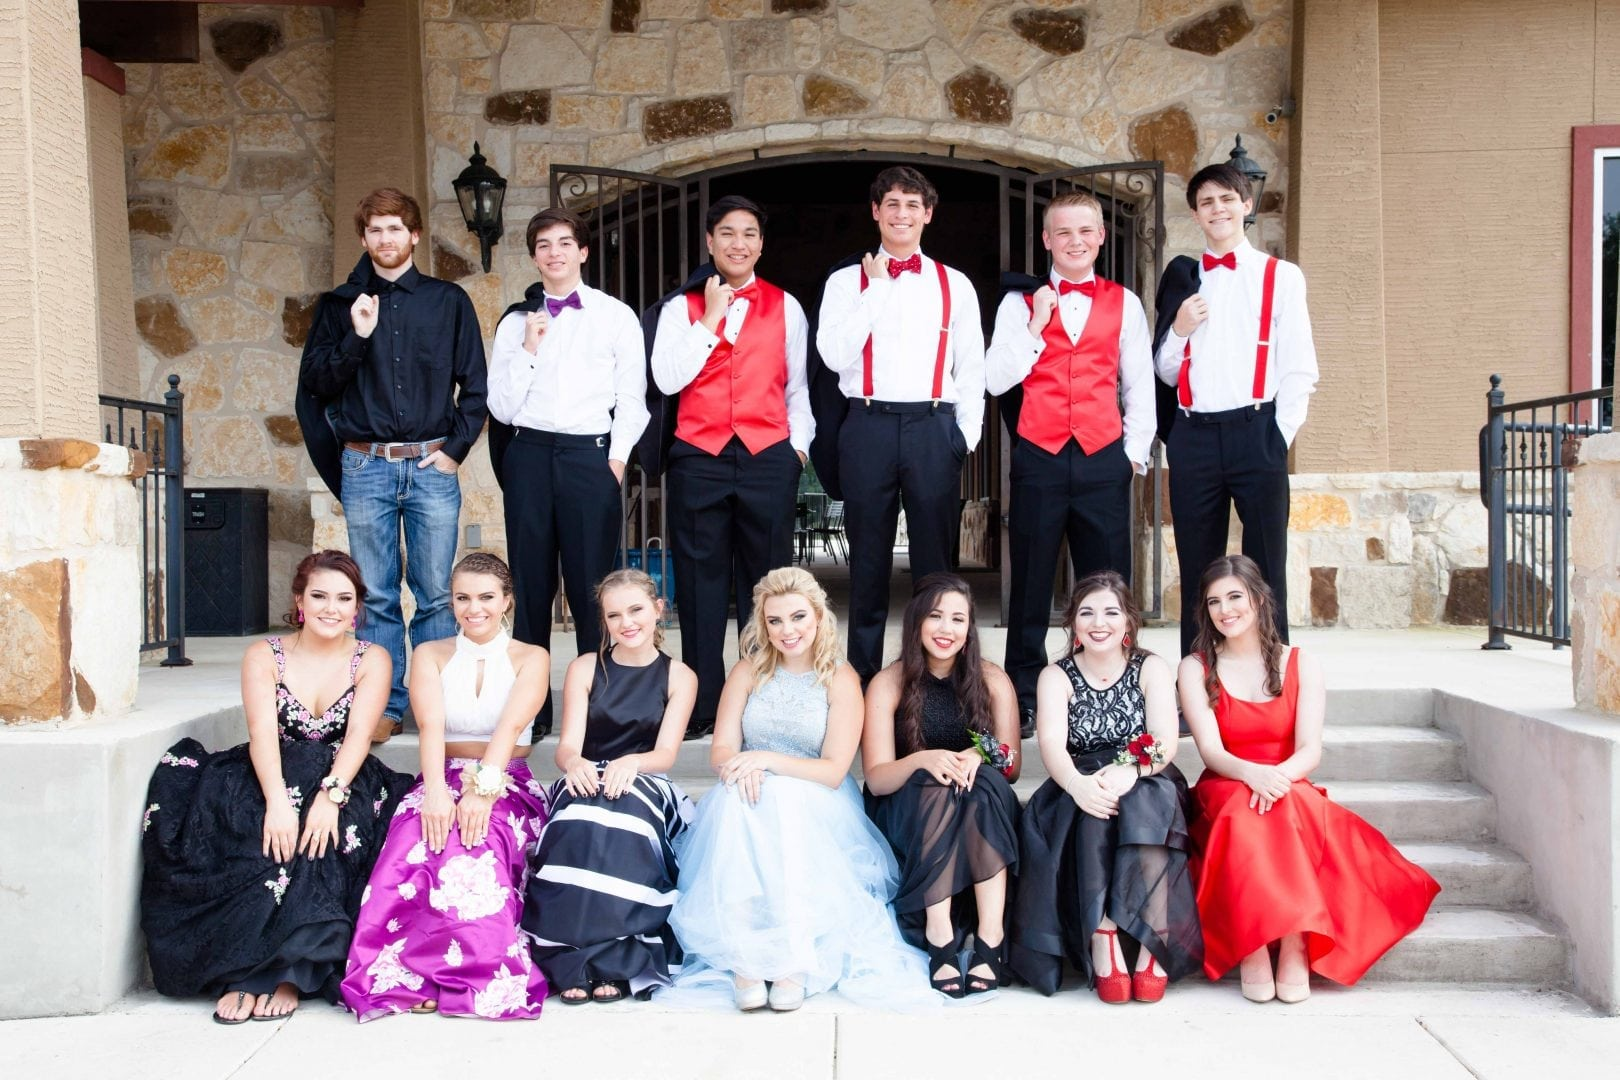 Prom Photography, Graduation Photography, Graduation Party, Prom Portraits-5